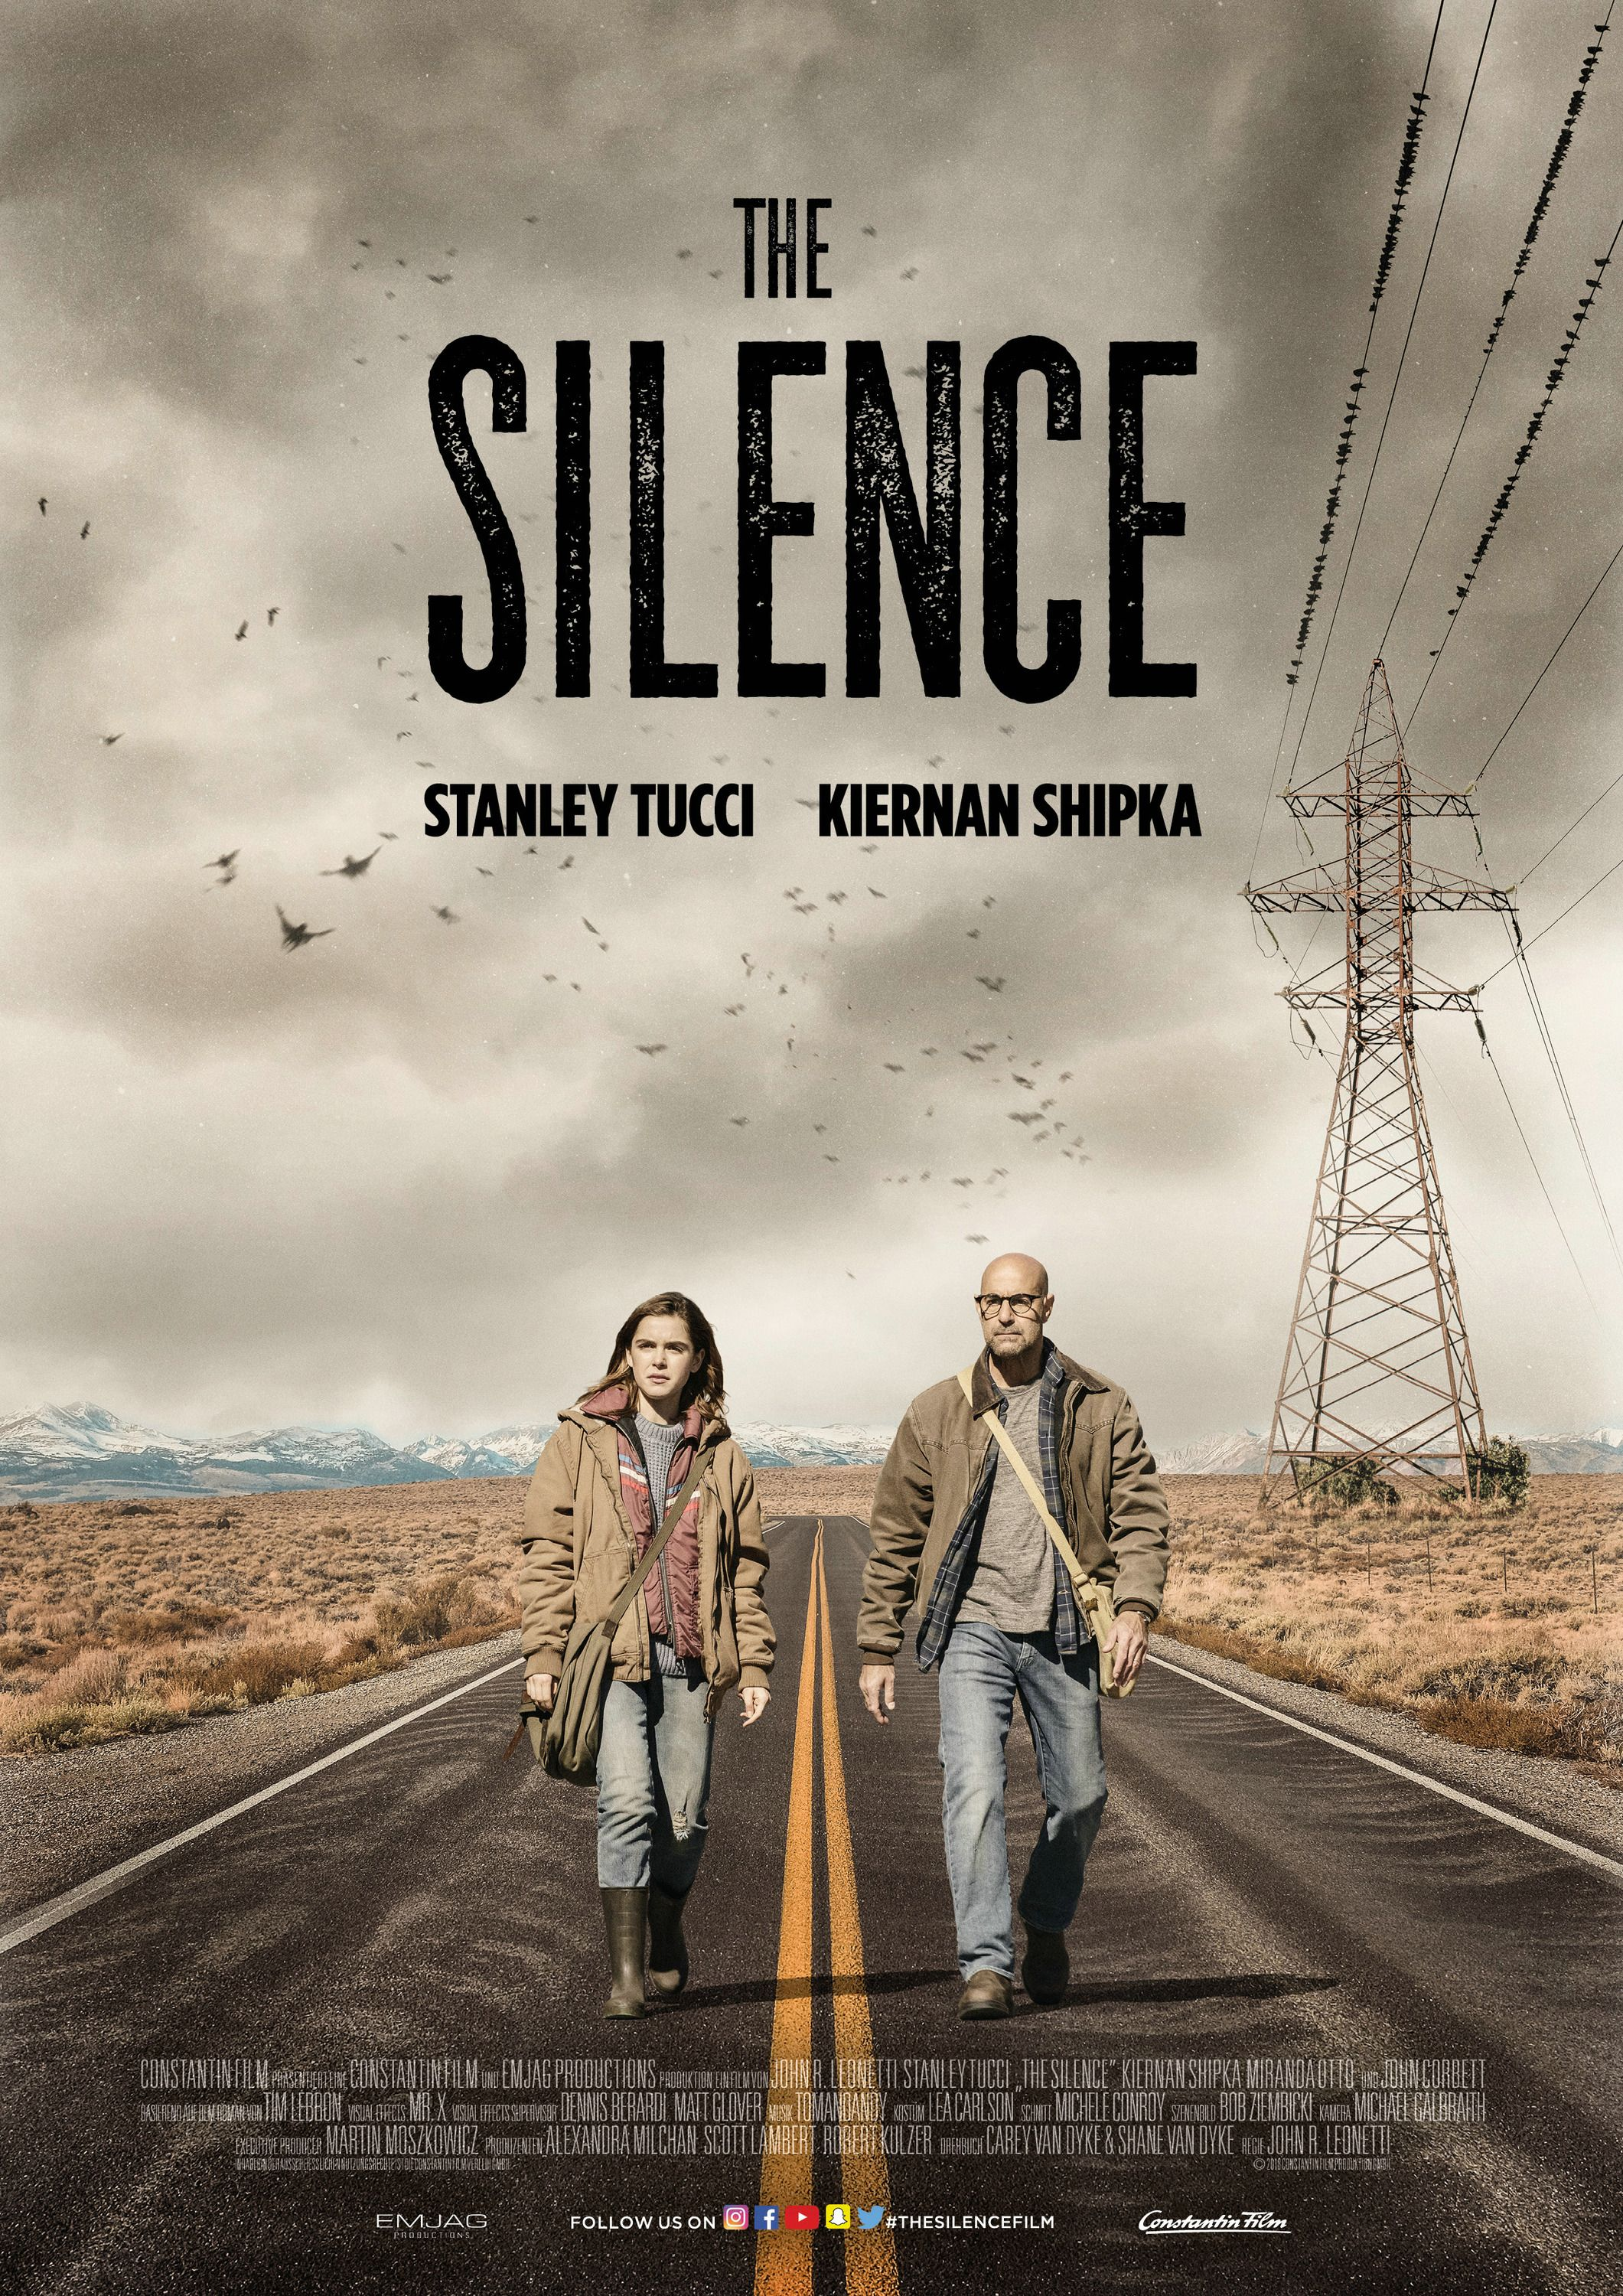 The Silence (2019) | Full movies, Marvel movie posters, Streaming ...